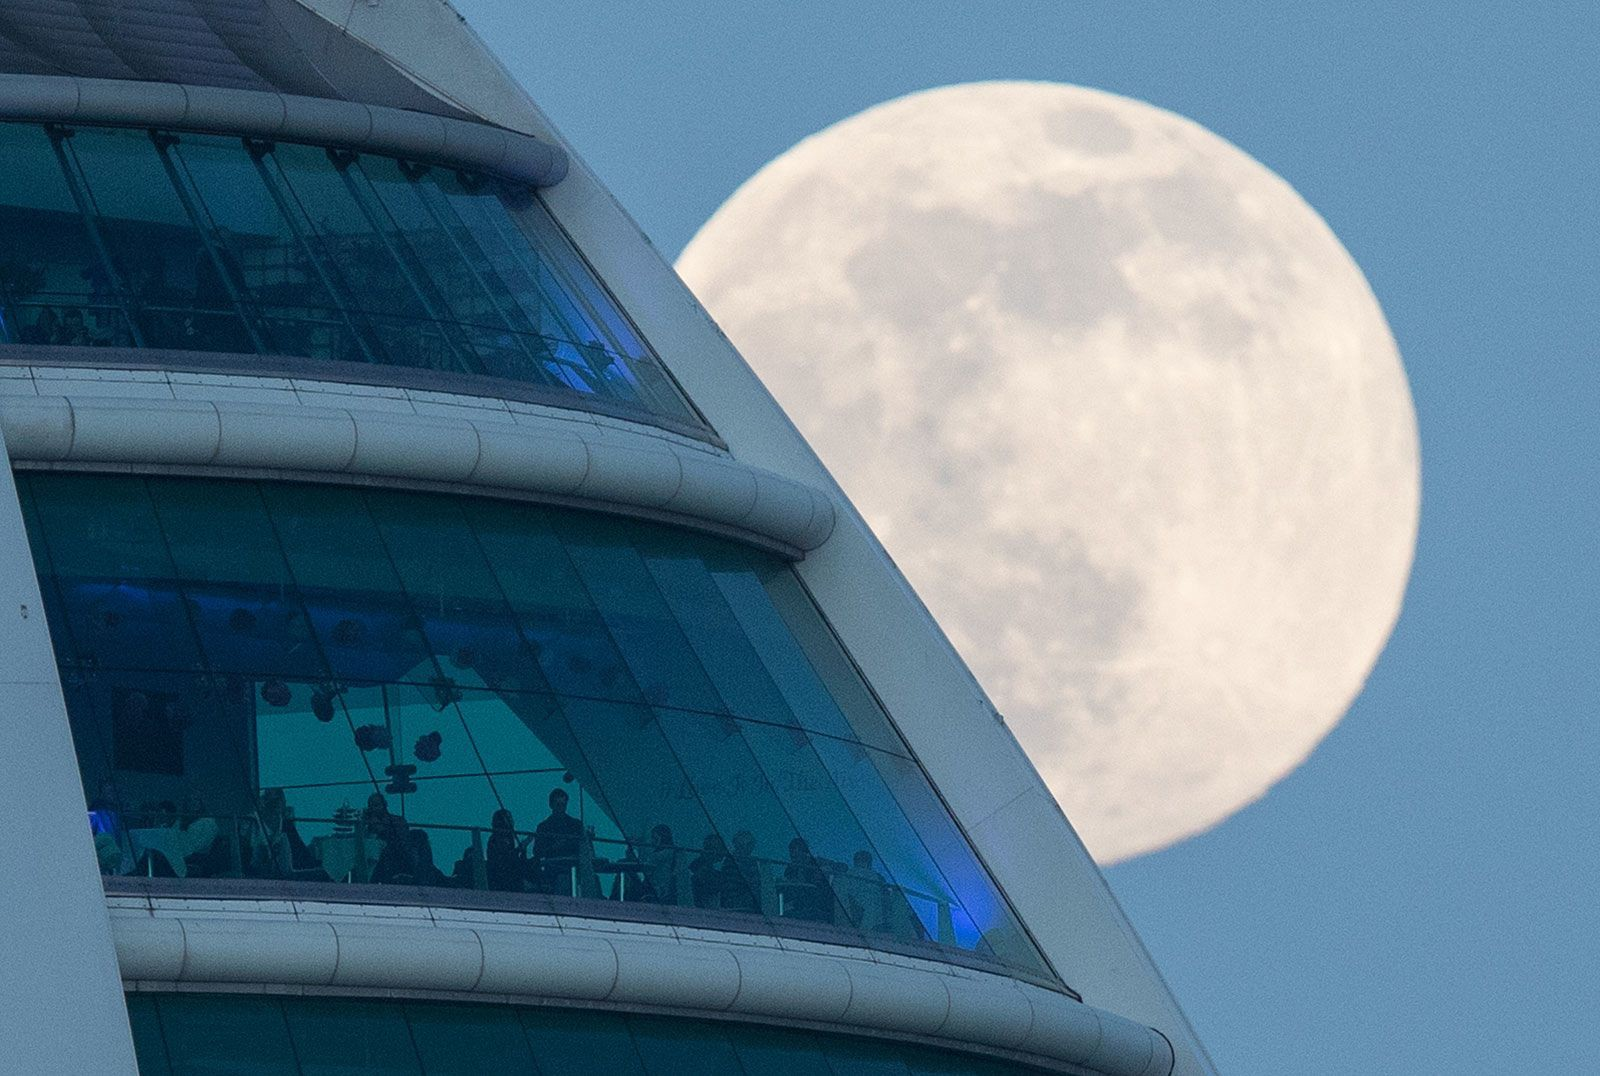 The Winter Moon rises behind Spinnaker Tower in Portsmouth England. Image by Andrew Matthews/PA Images via Getty Images